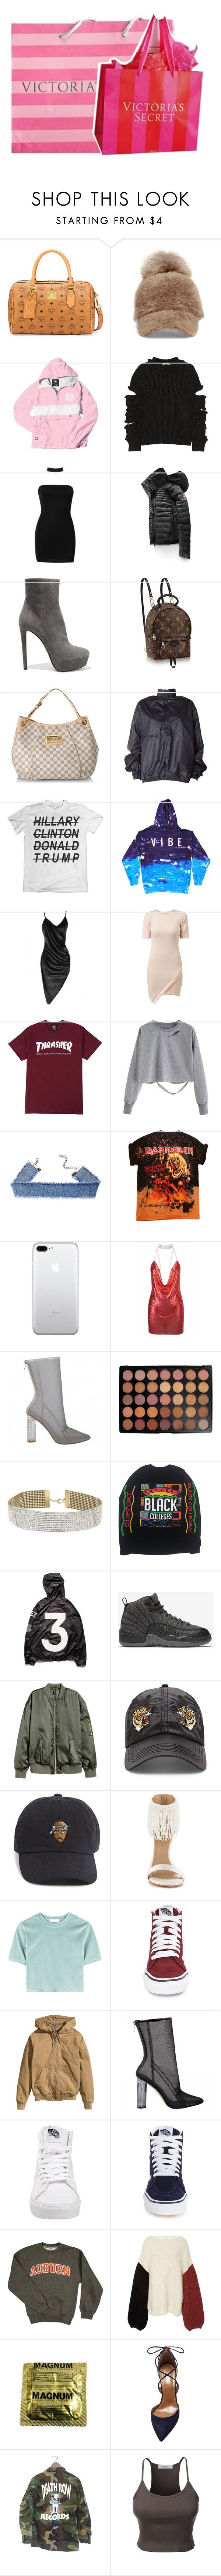 """""""for the gang. 💰🔪"""" by y-oungin ❤ liked on Polyvore featuring MCM, Steve Madden, Christopher Kane, Boohoo, Canada Goose, Prada, Louis Vuitton, adidas Originals, Sanders and Fashion Union"""